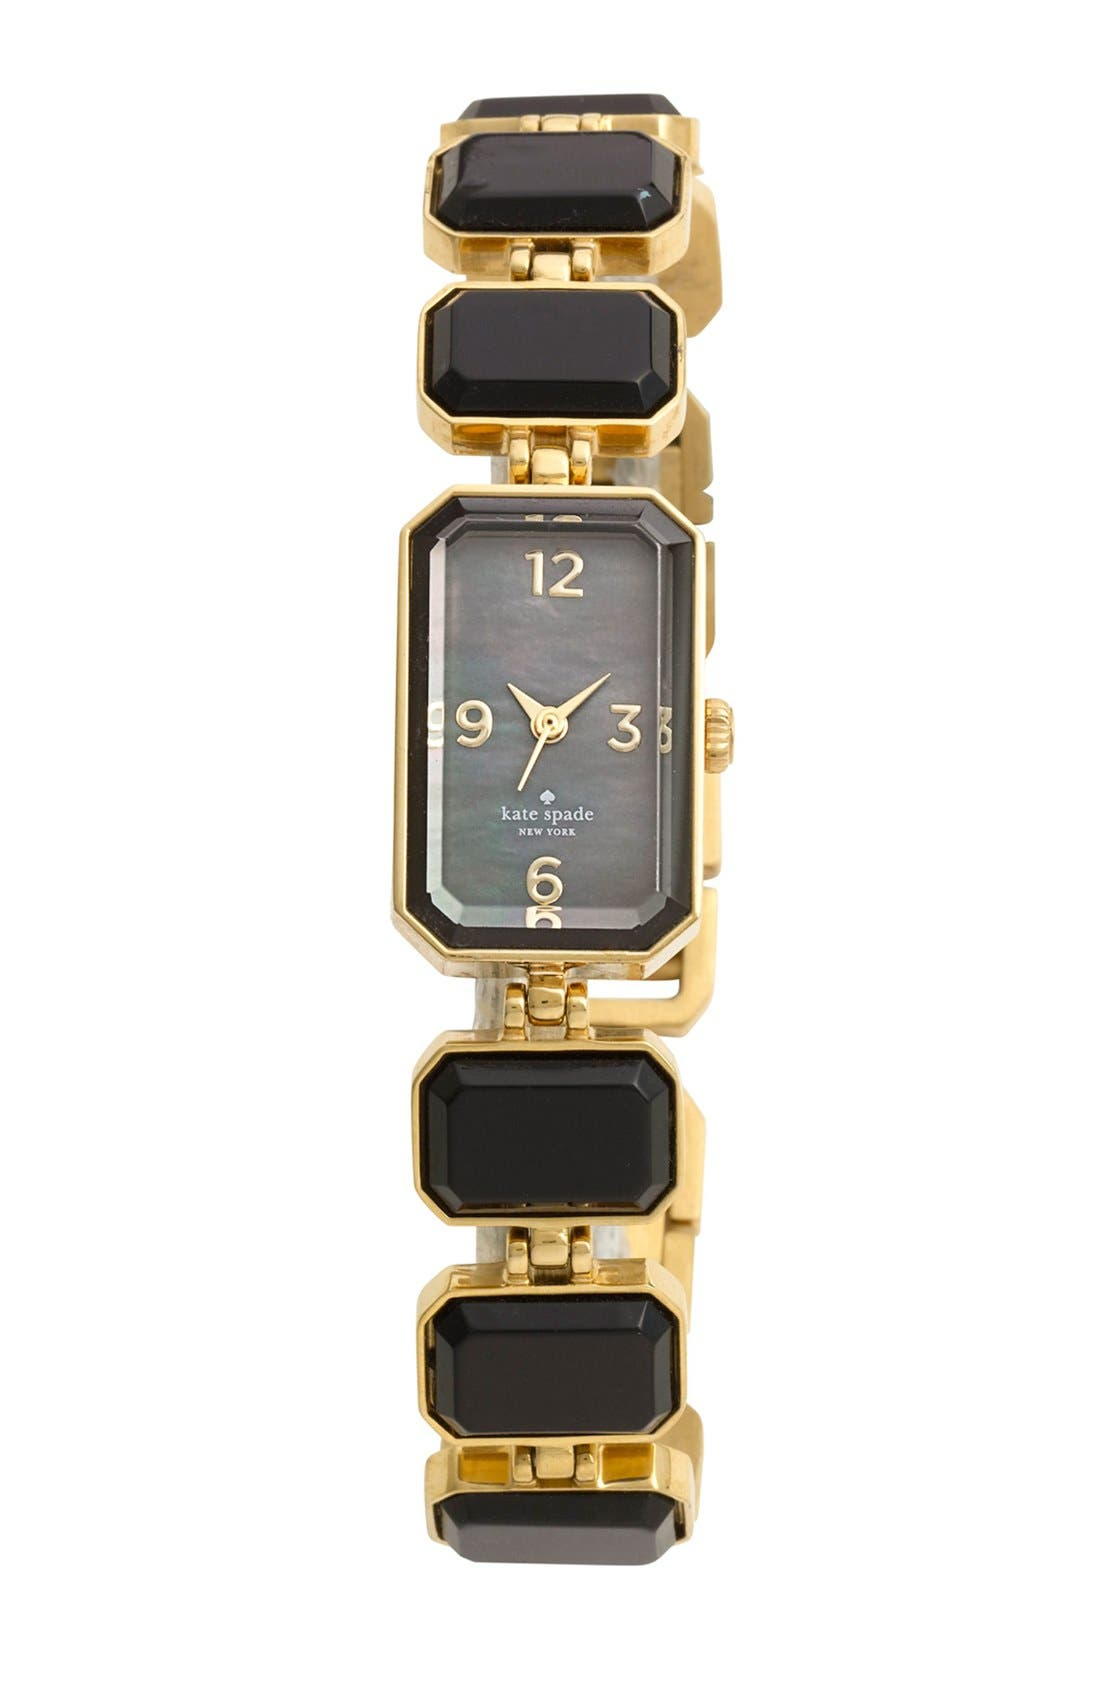 Main Image - kate spade new york 'wythe' crystal bracelet watch, 10mm x 25mm